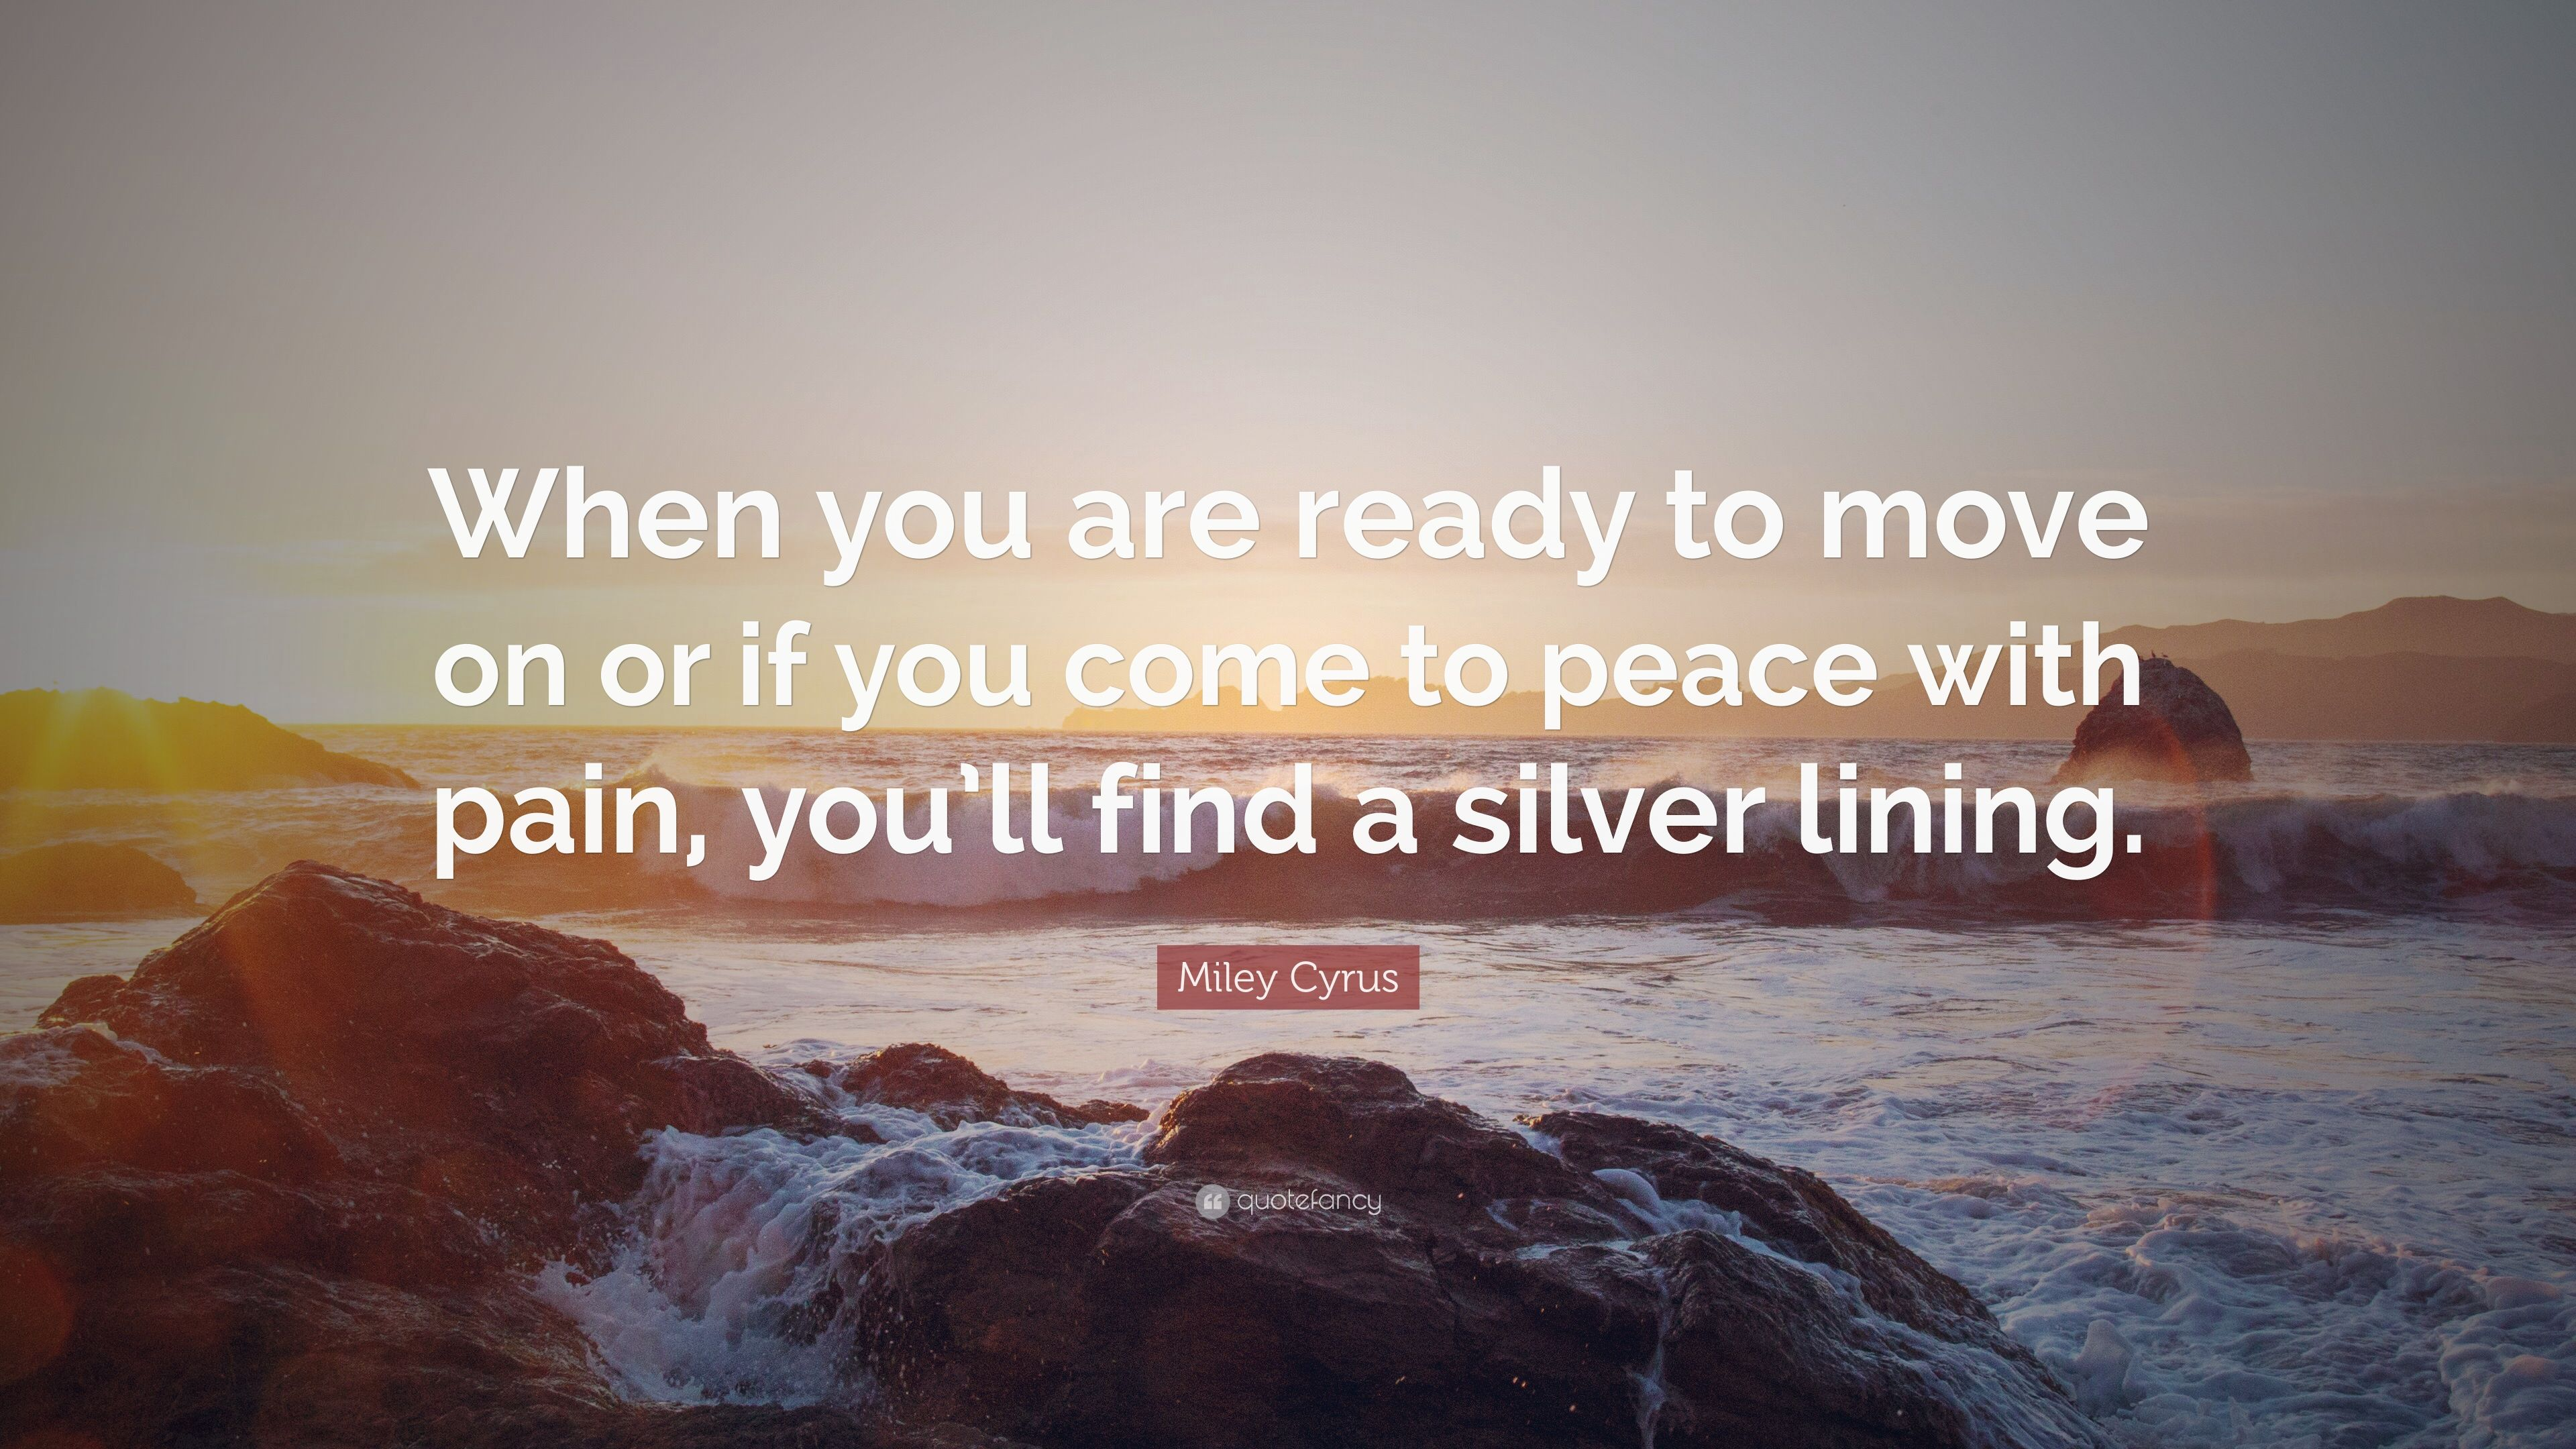 Miley Cyrus Quote When You Are Ready To Move On Or If You Come To